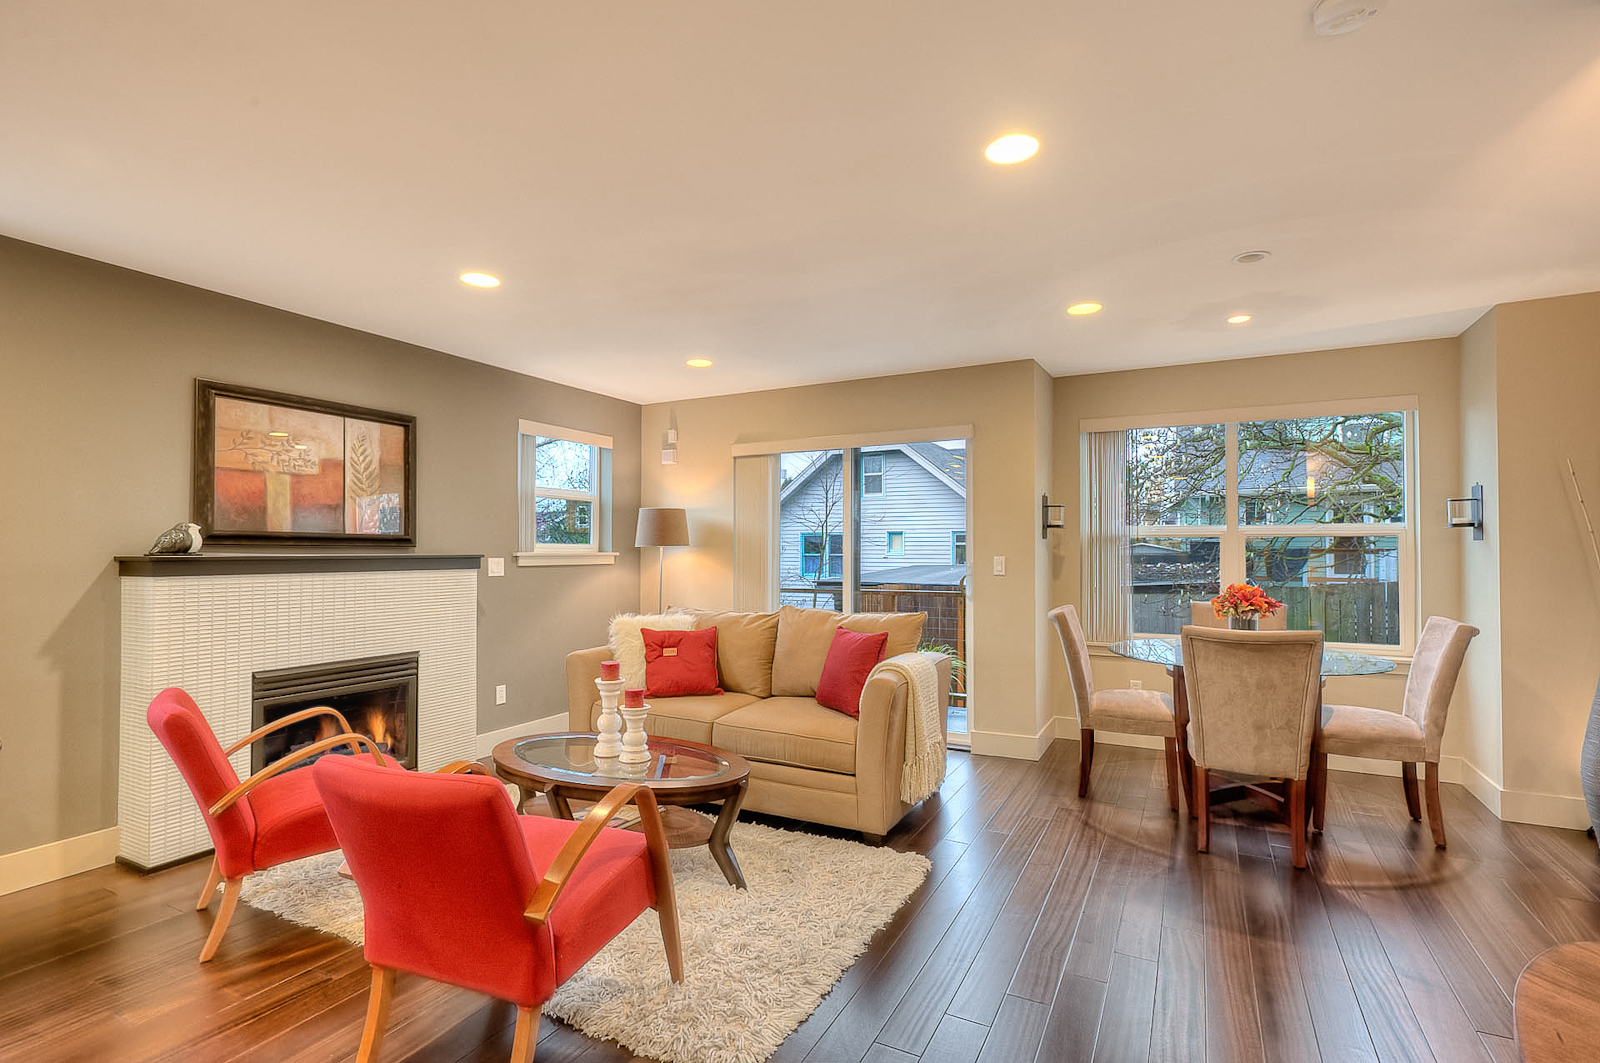 7 Tips For Arranging Your Furniture The Columnyst